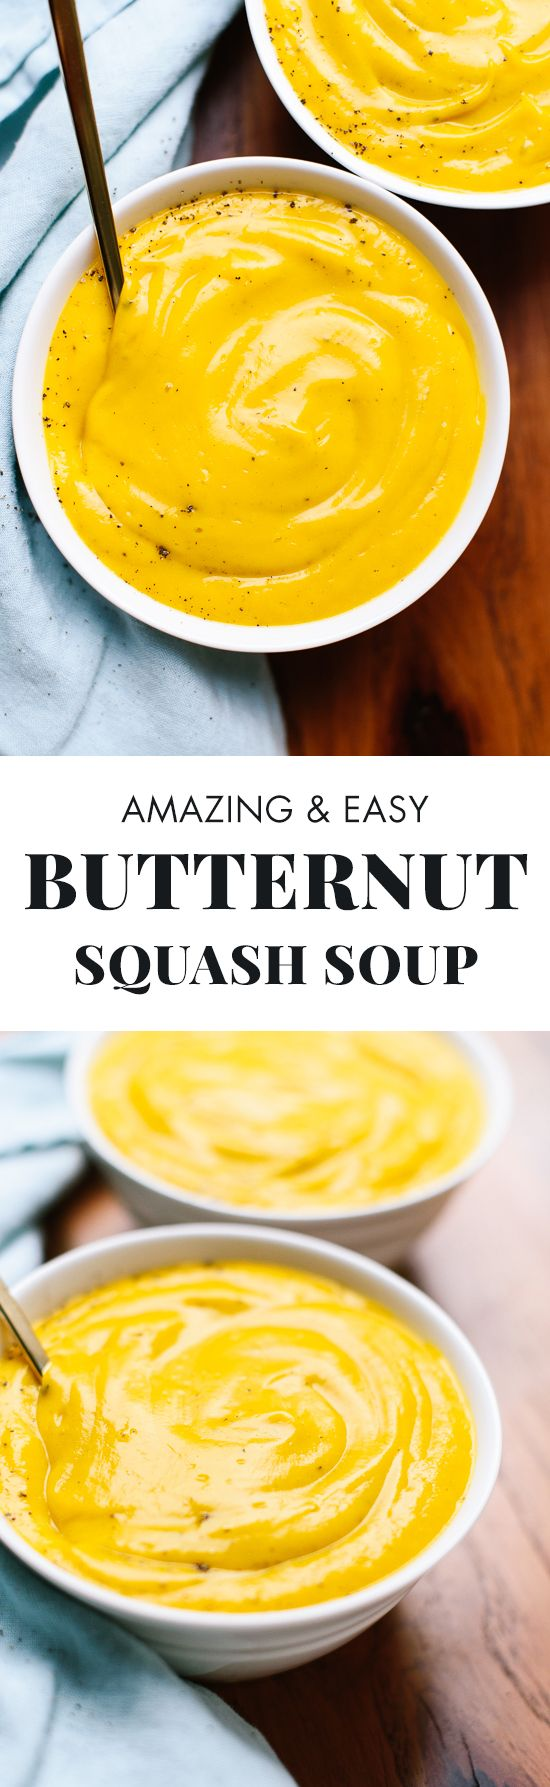 This roasted butternut squash soup recipe is super creamy but light (and easy to make!). cookieandkate.com